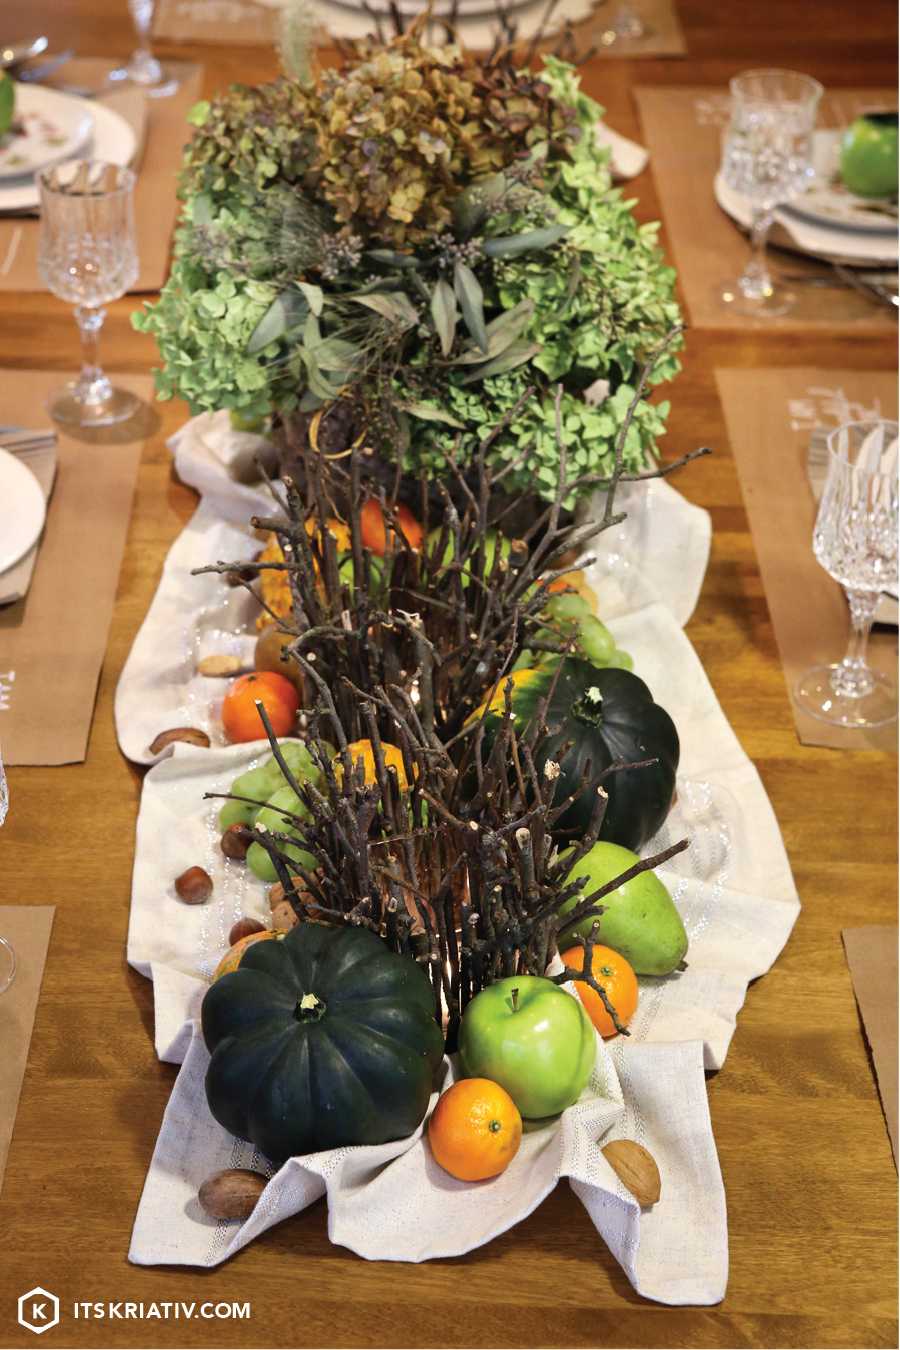 13_Nov_Decor-Thanksgiving-Centerpiece-07.jpg